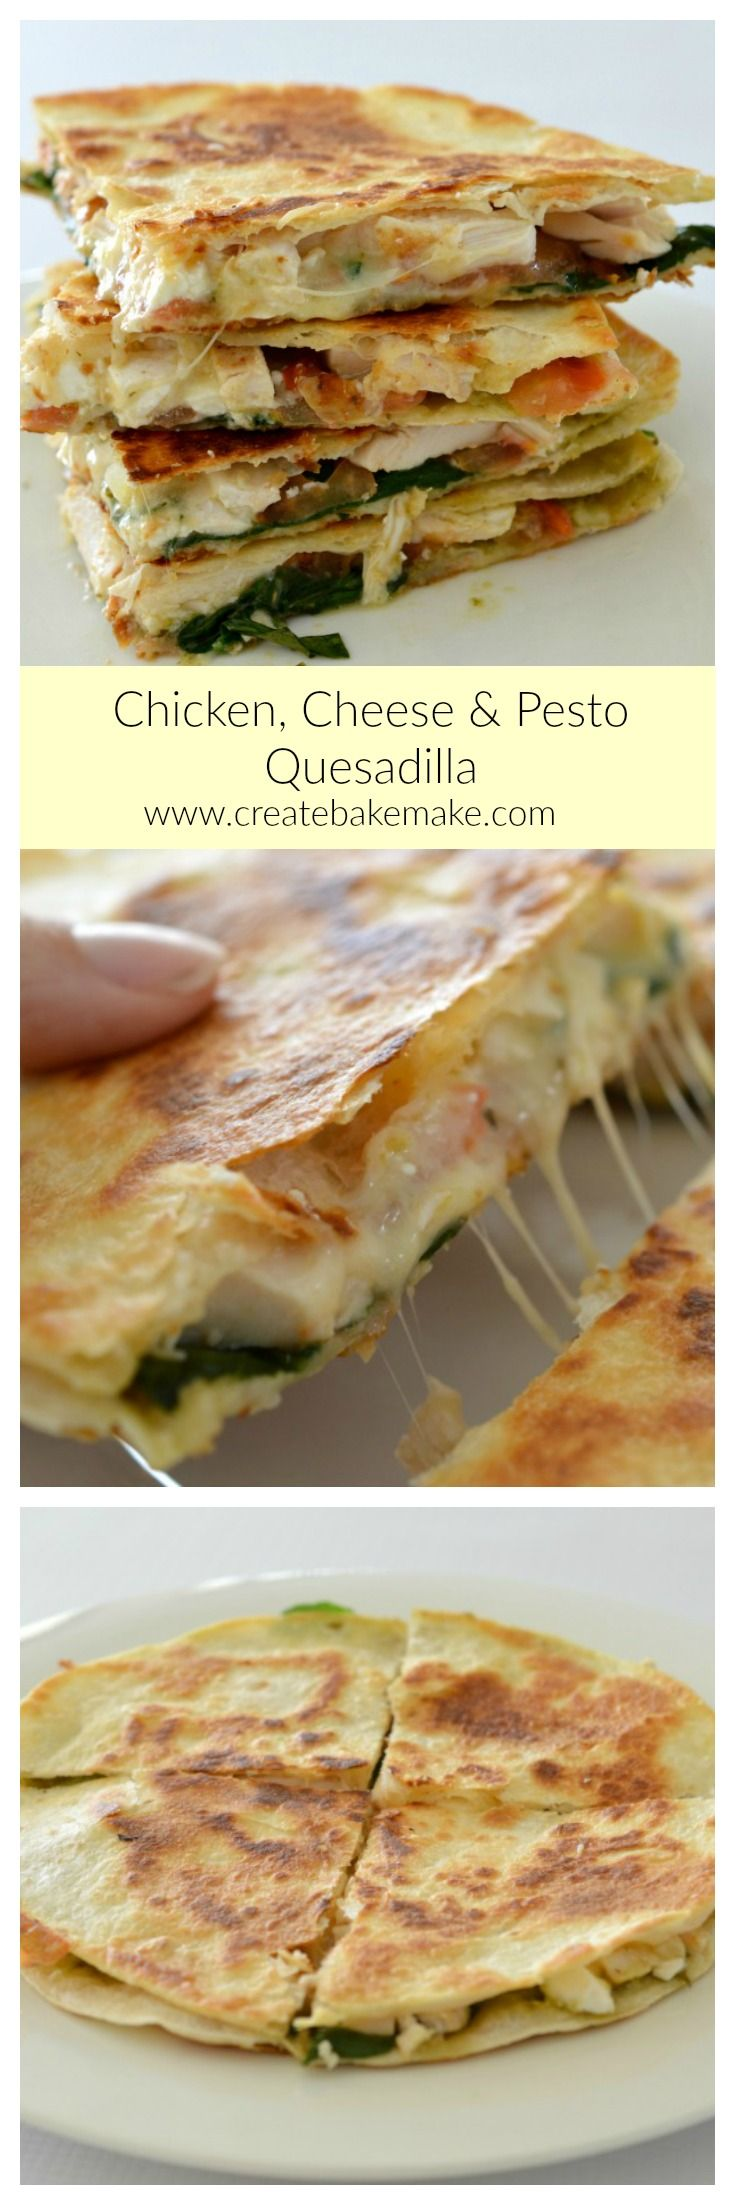 Lunch   This Cheesy Chicken Cheese and Pesto Quesadilla is both easy and delicious, making it the perfect simple lunch or dinner!